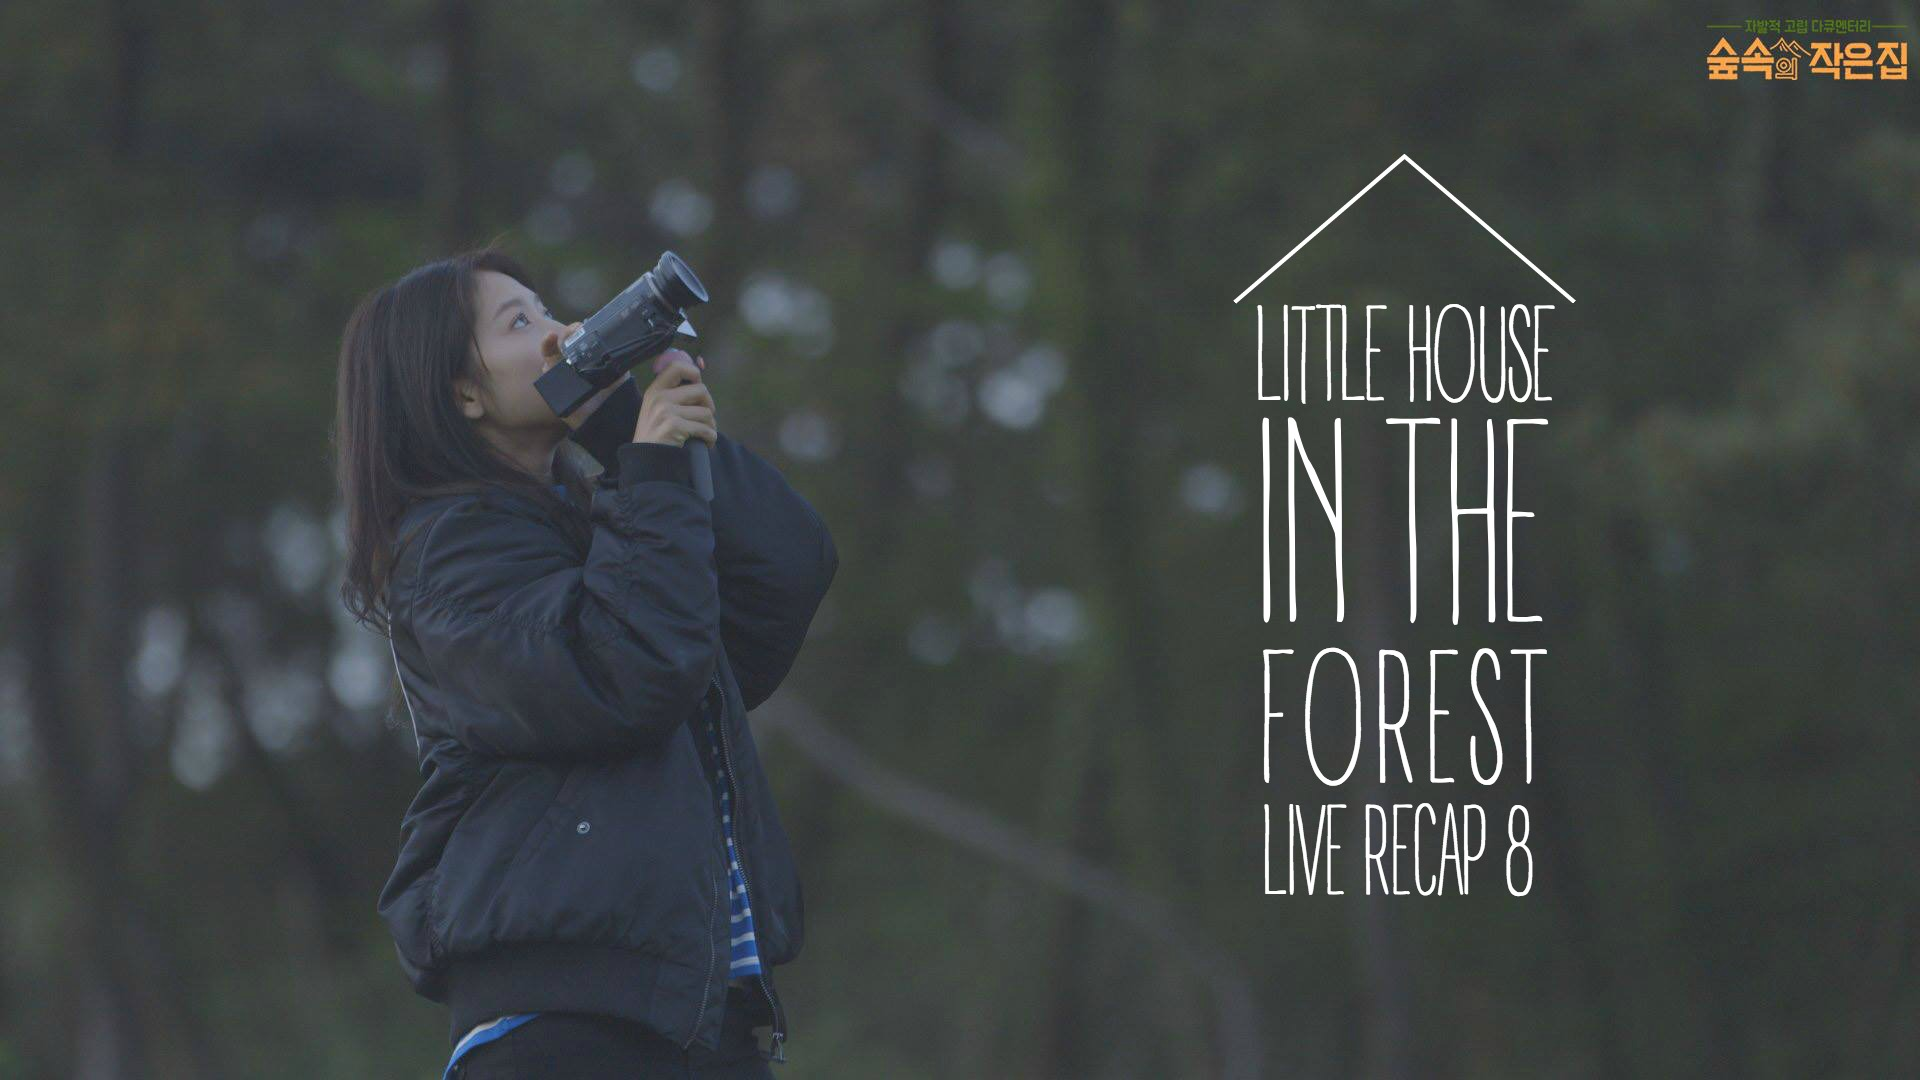 Live Recap for episode 8 of Little House in the Forest Starring So Ji-sub and Park Shin-hye